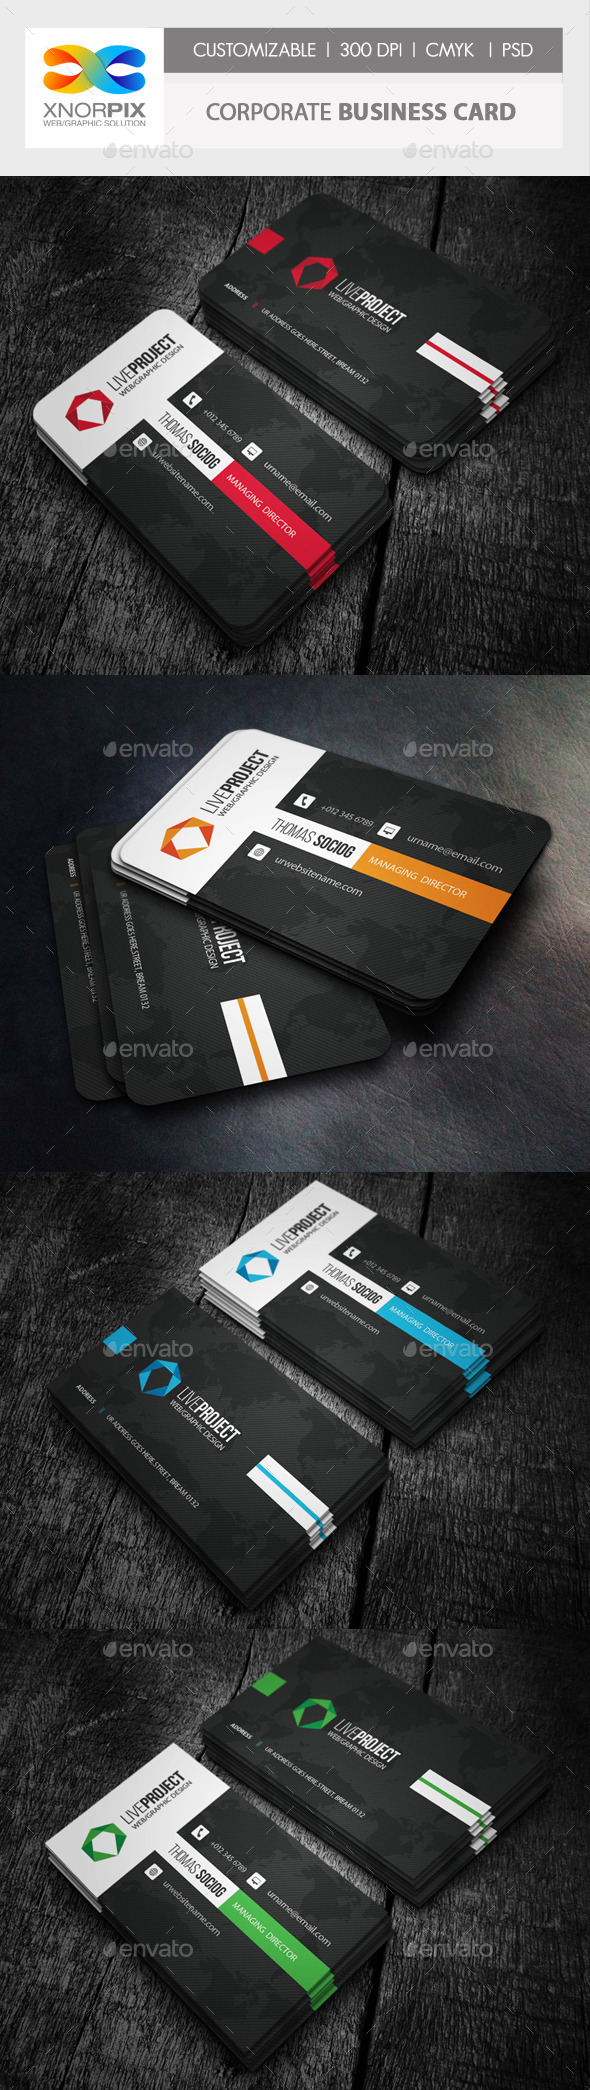 GraphicRiver Corporate Business Card 10007399